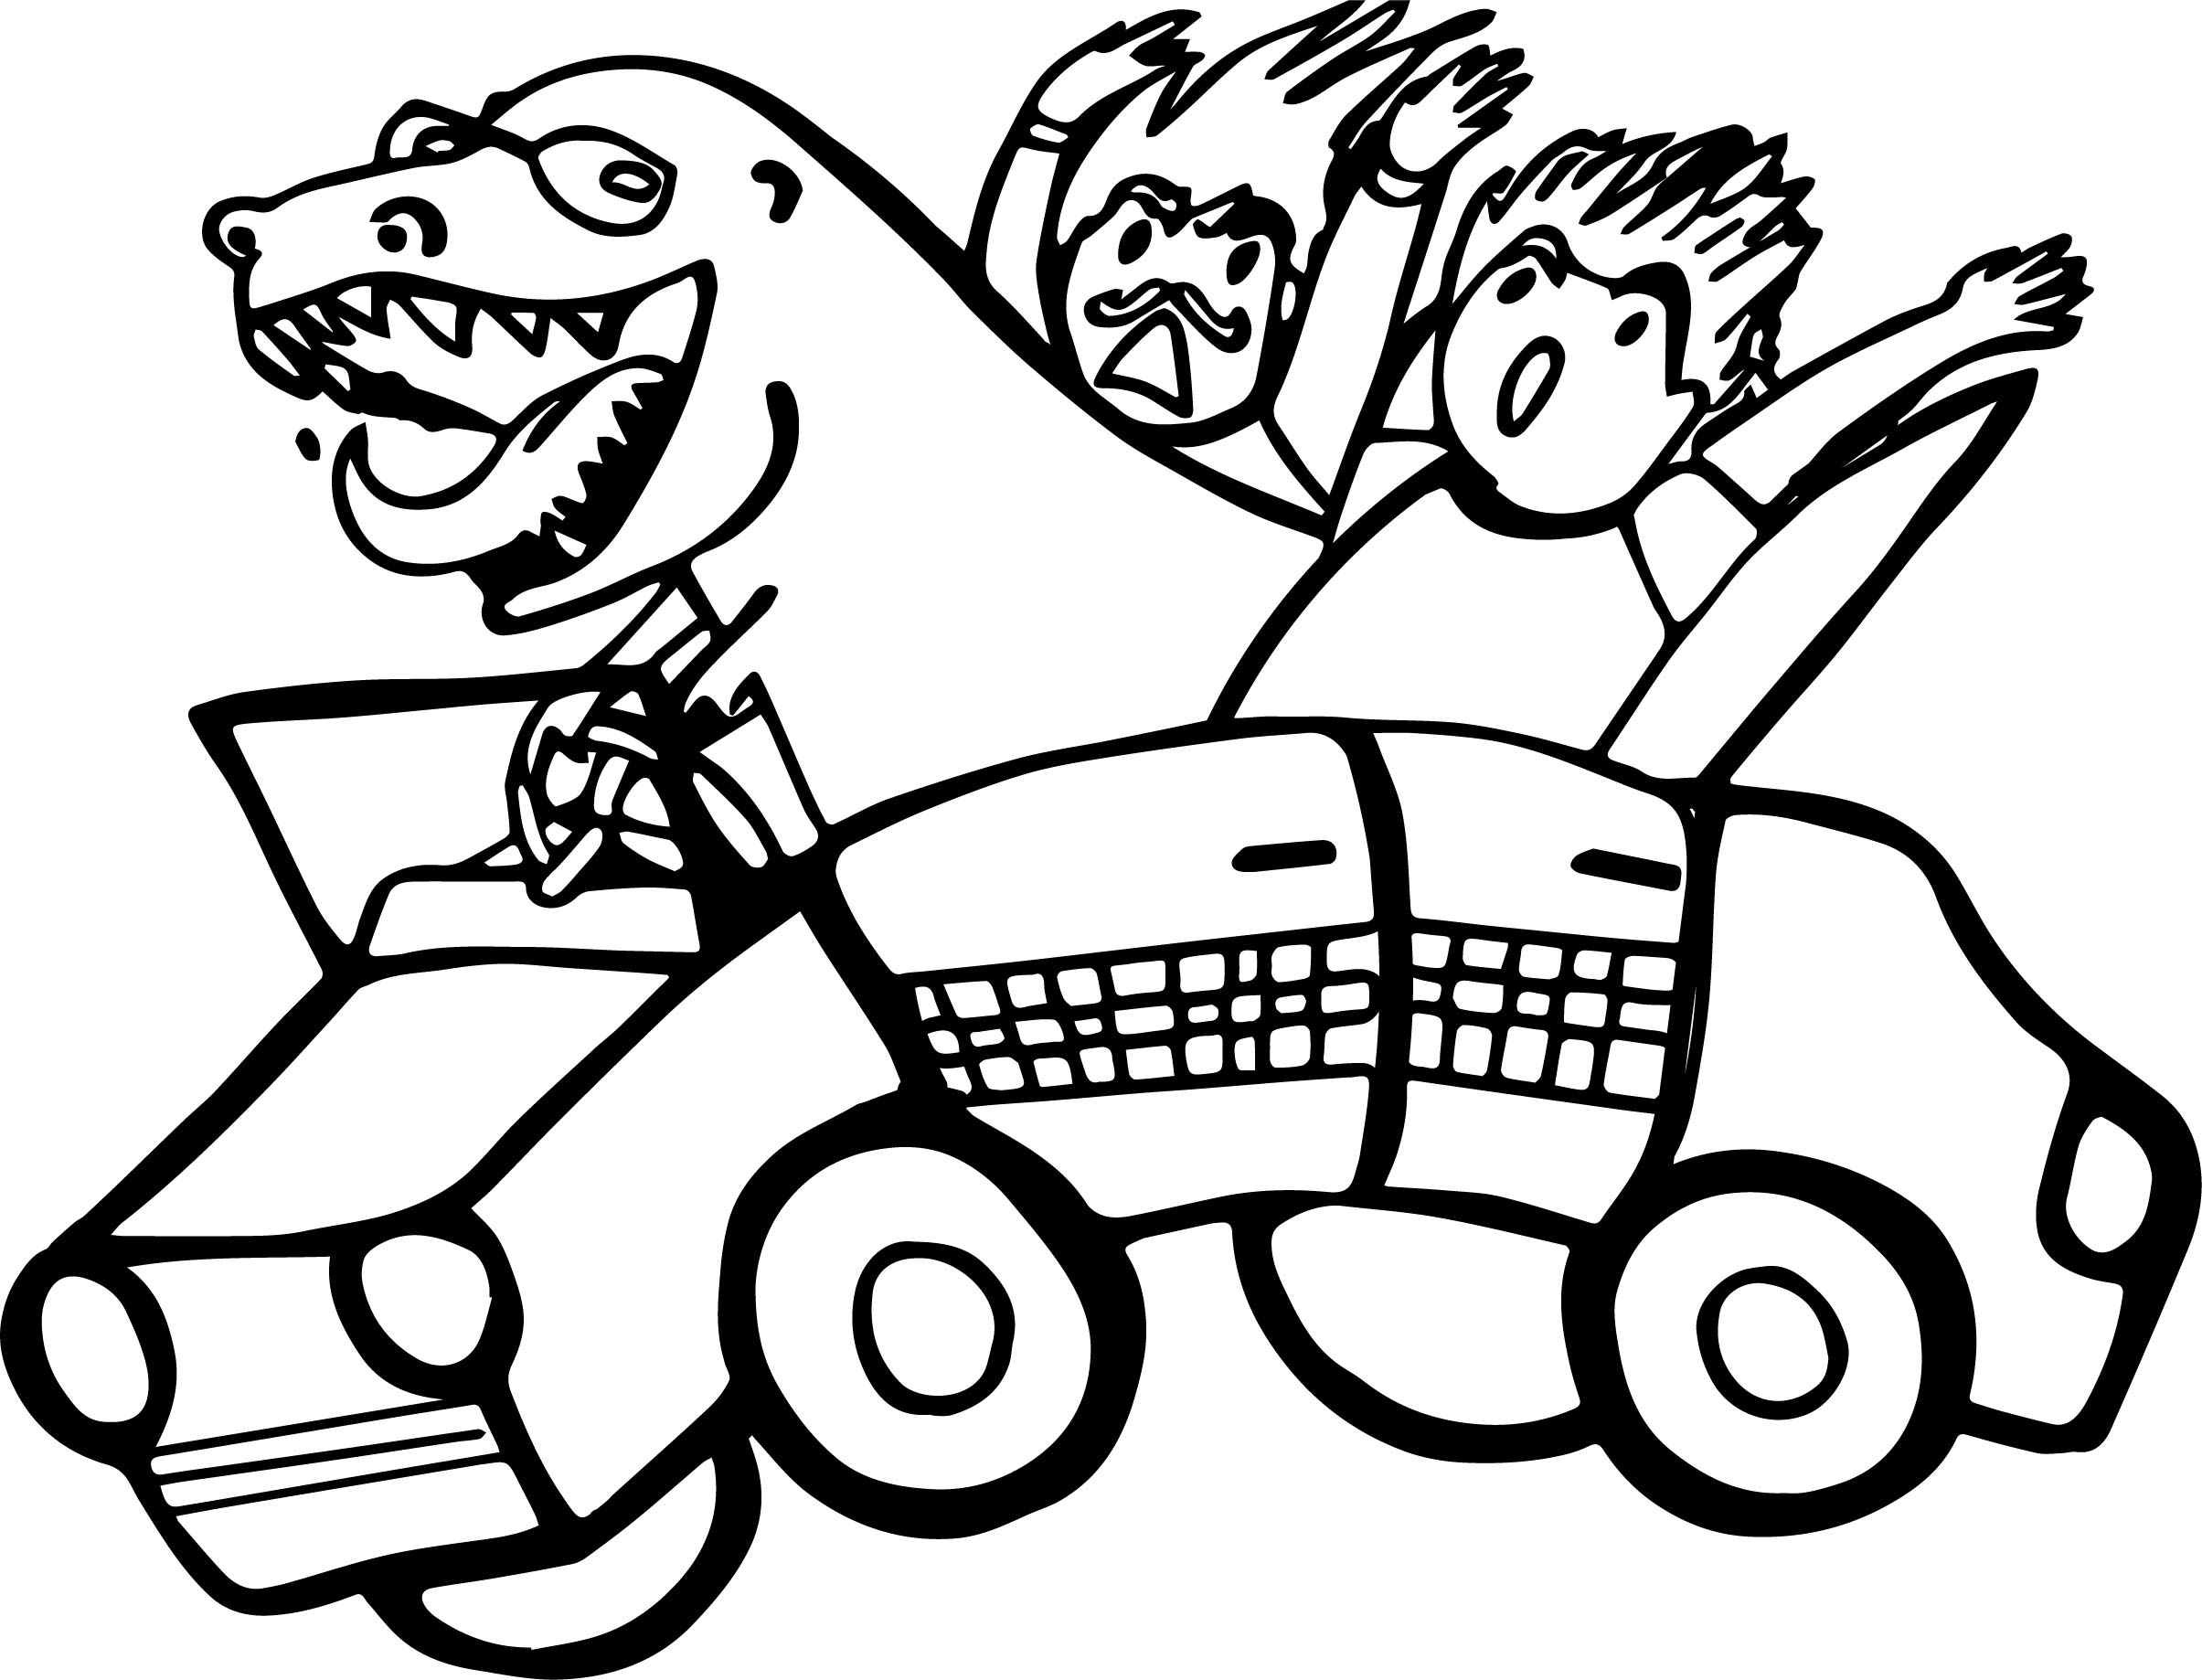 Dragon taxi driver car coloring page wecoloringpage for Taxi coloring page